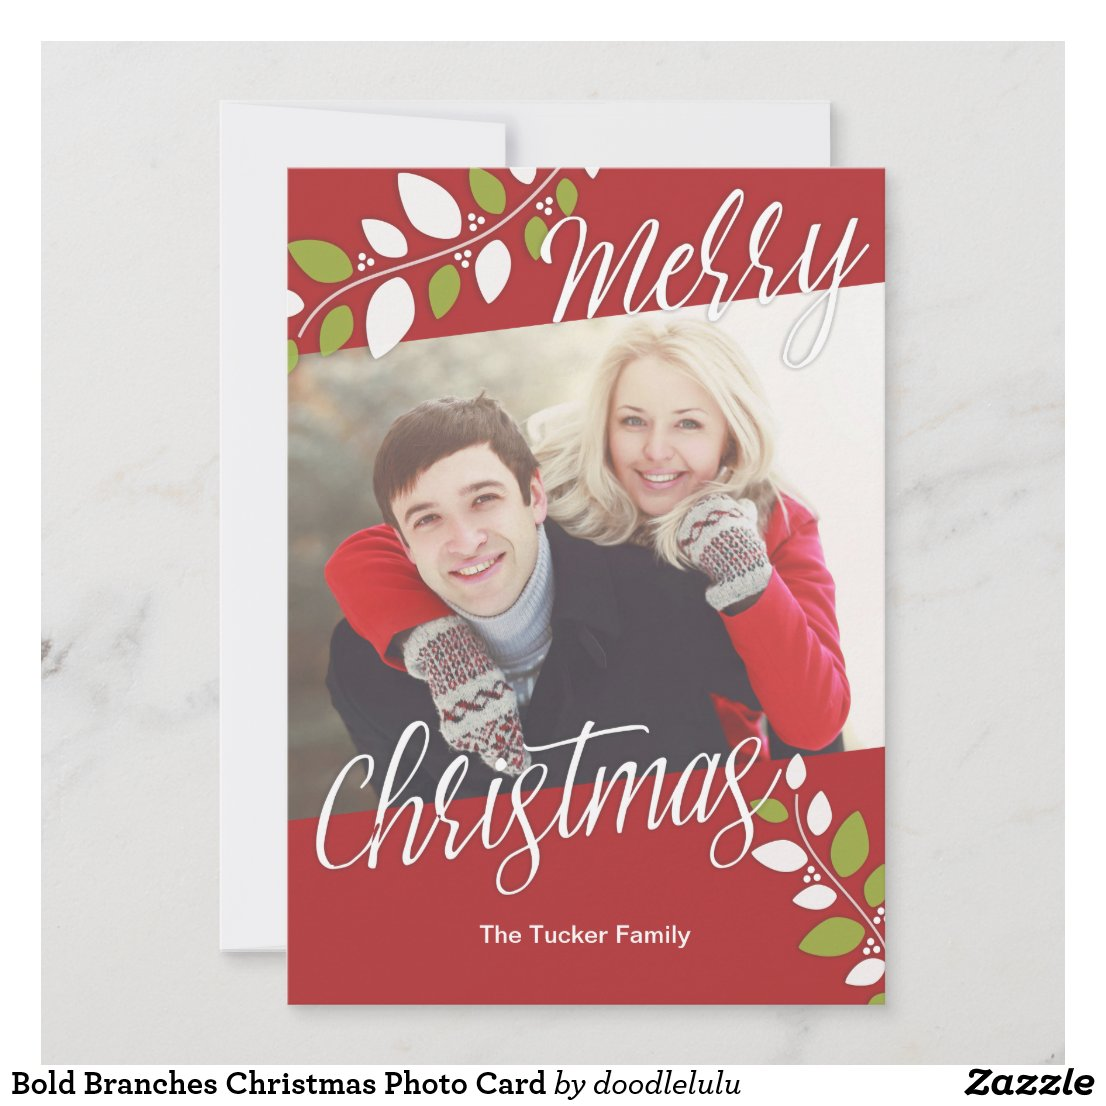 Bold Branches Christmas Photo Card